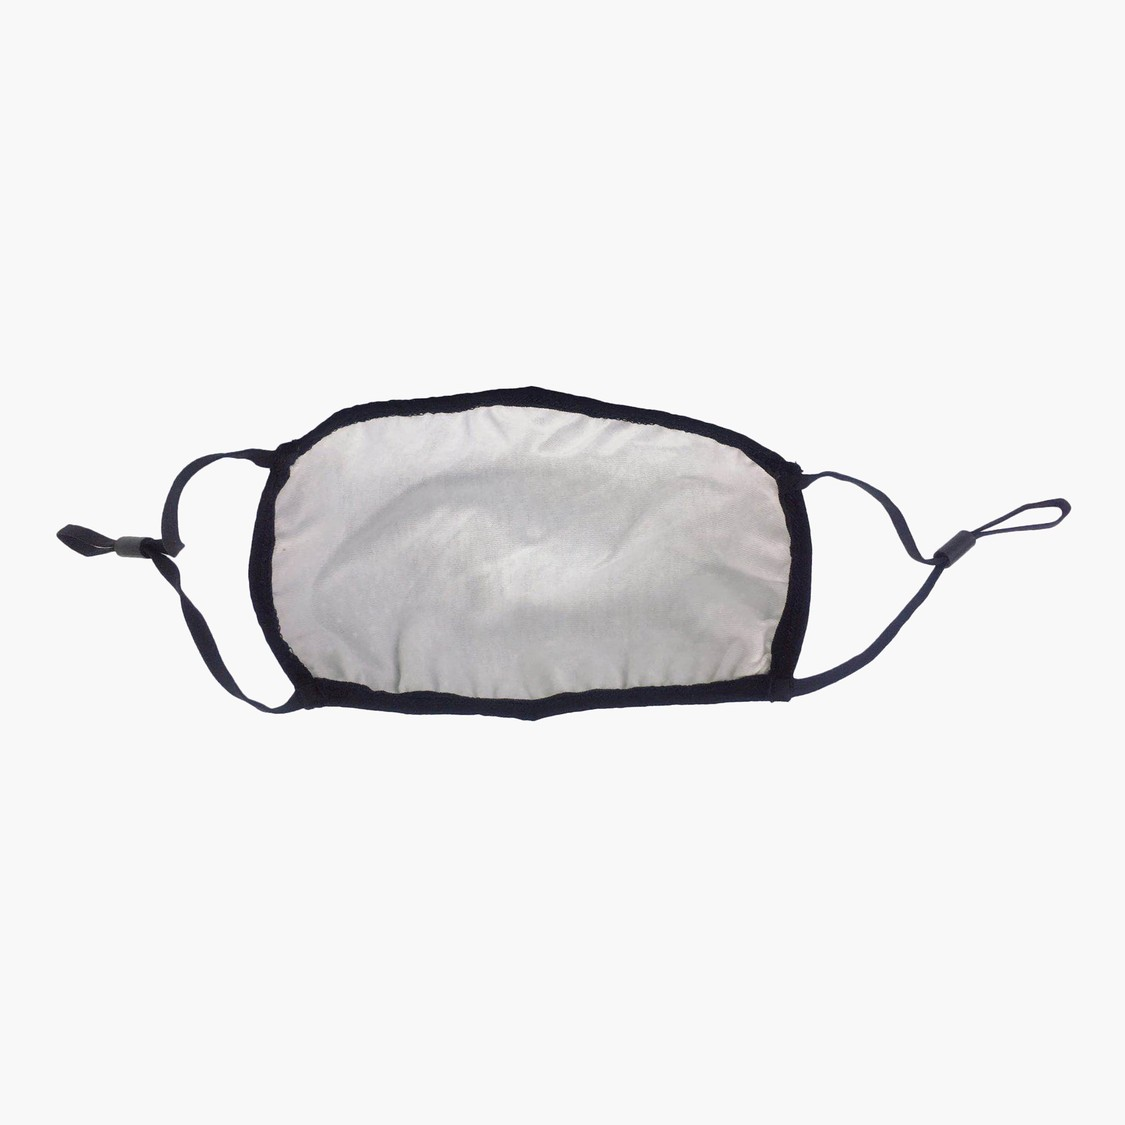 Scatter Dots Print Reflective Mask with Adjustable Straps